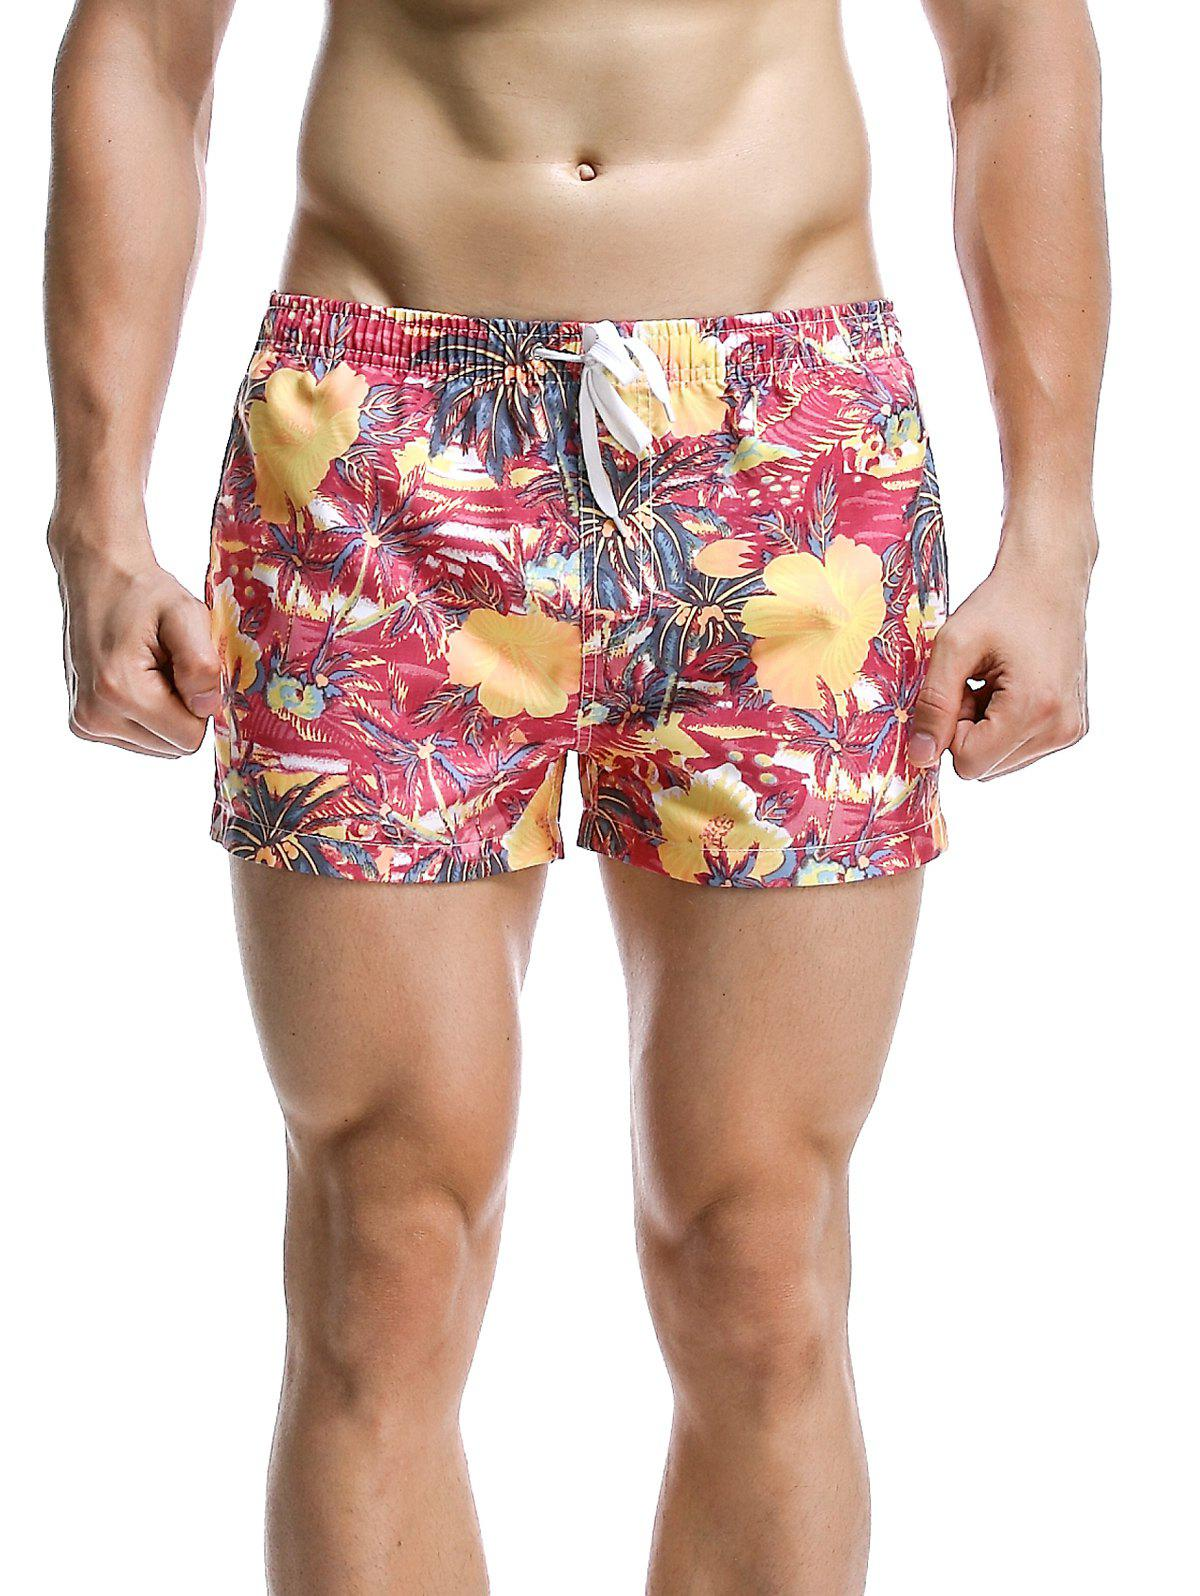 Men's Fashion Coconut Tree Printed Boardshorts - RED XL